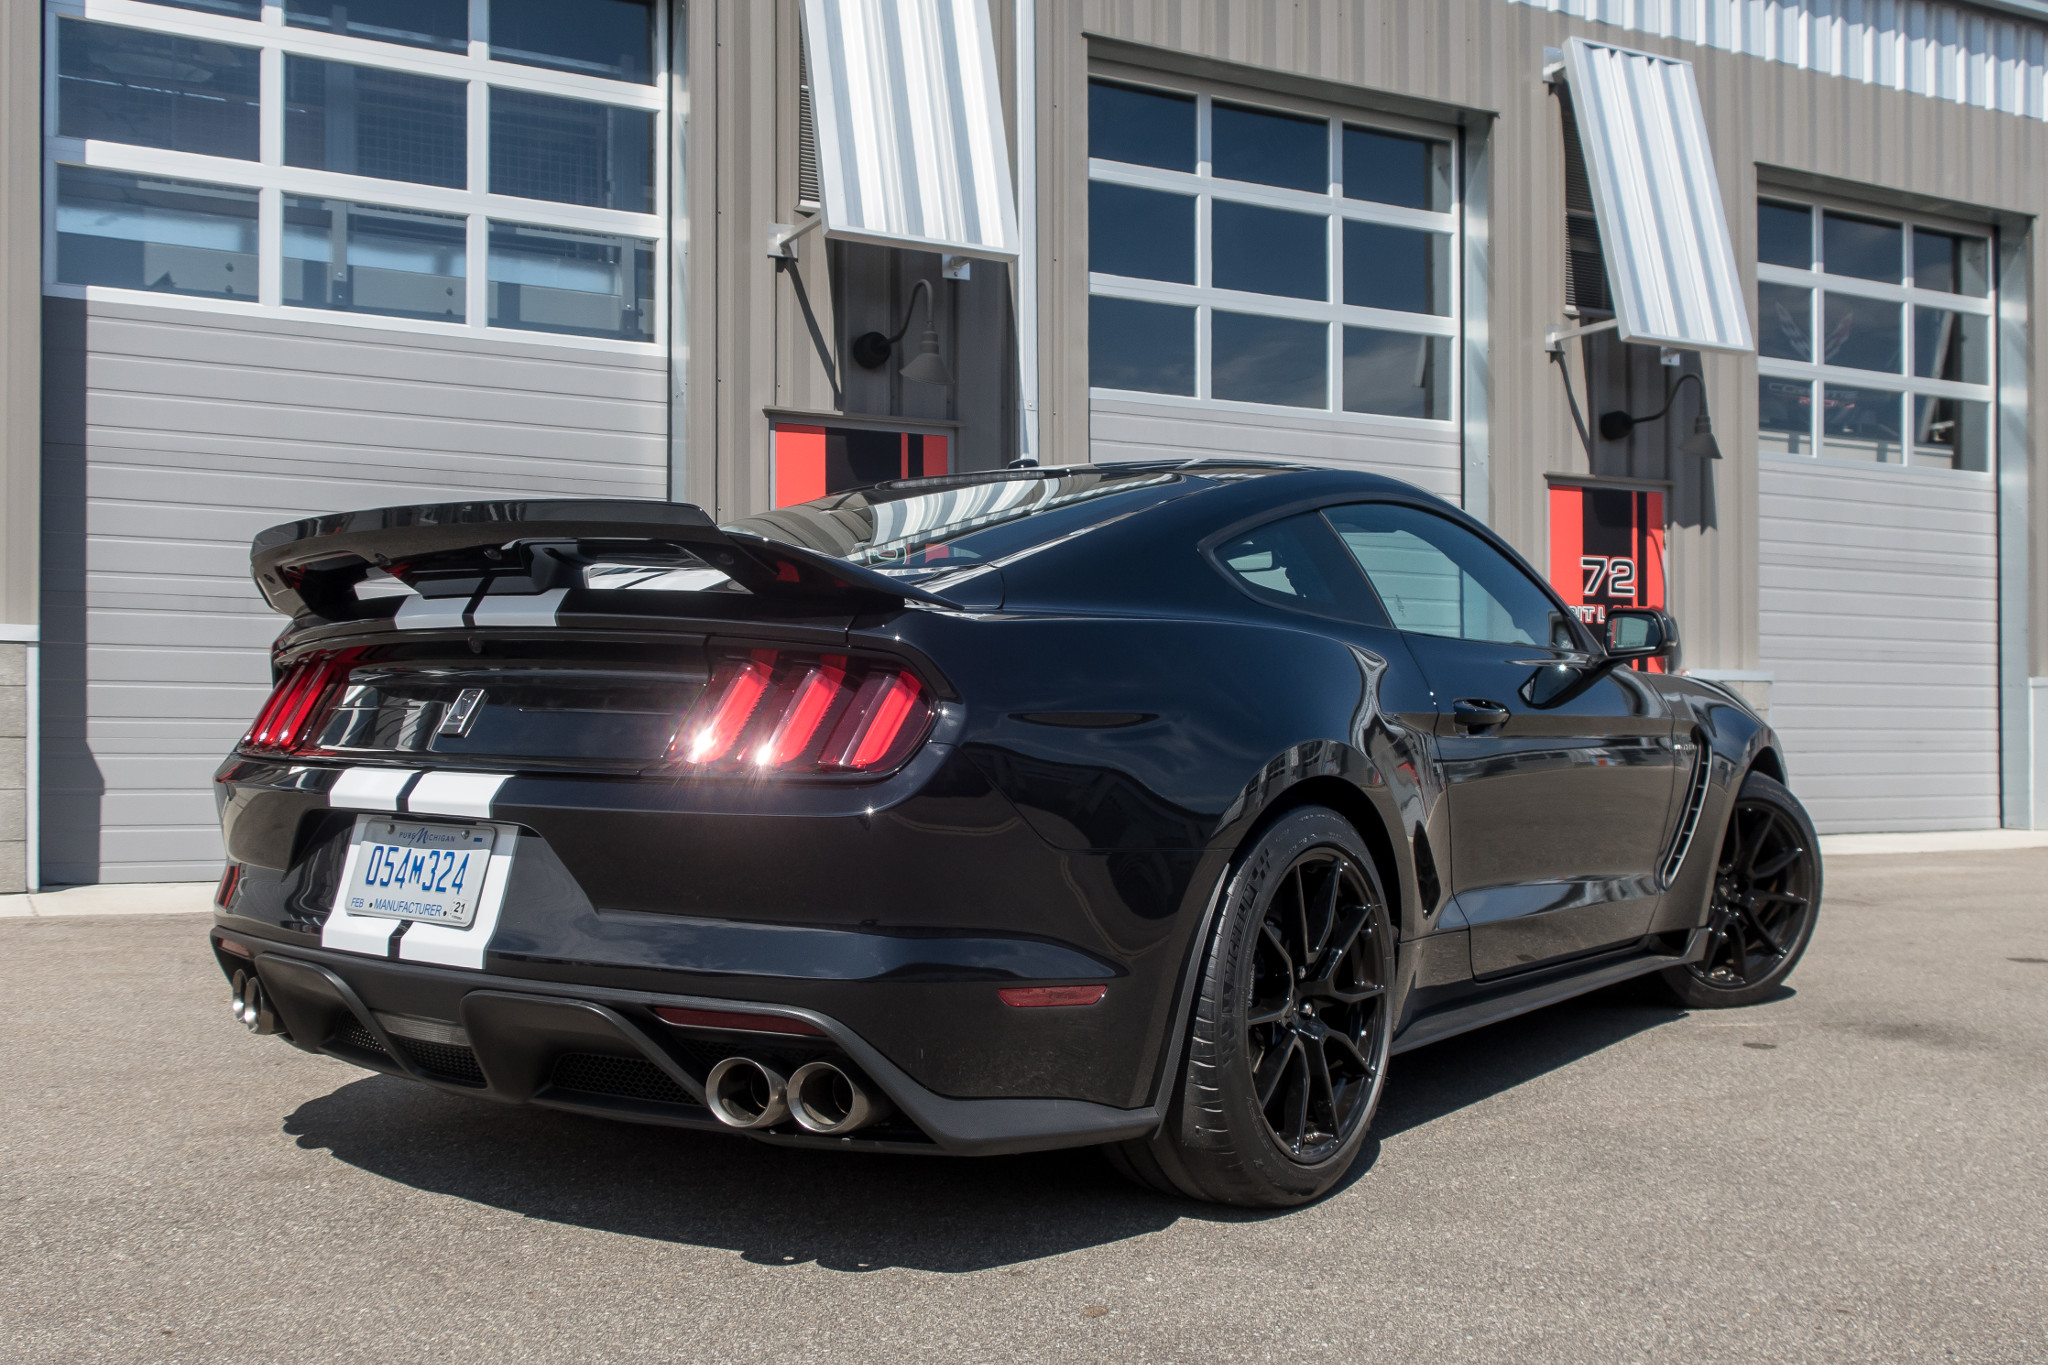 2019 ford mustang shelby gt350 first drive is this the best mustang